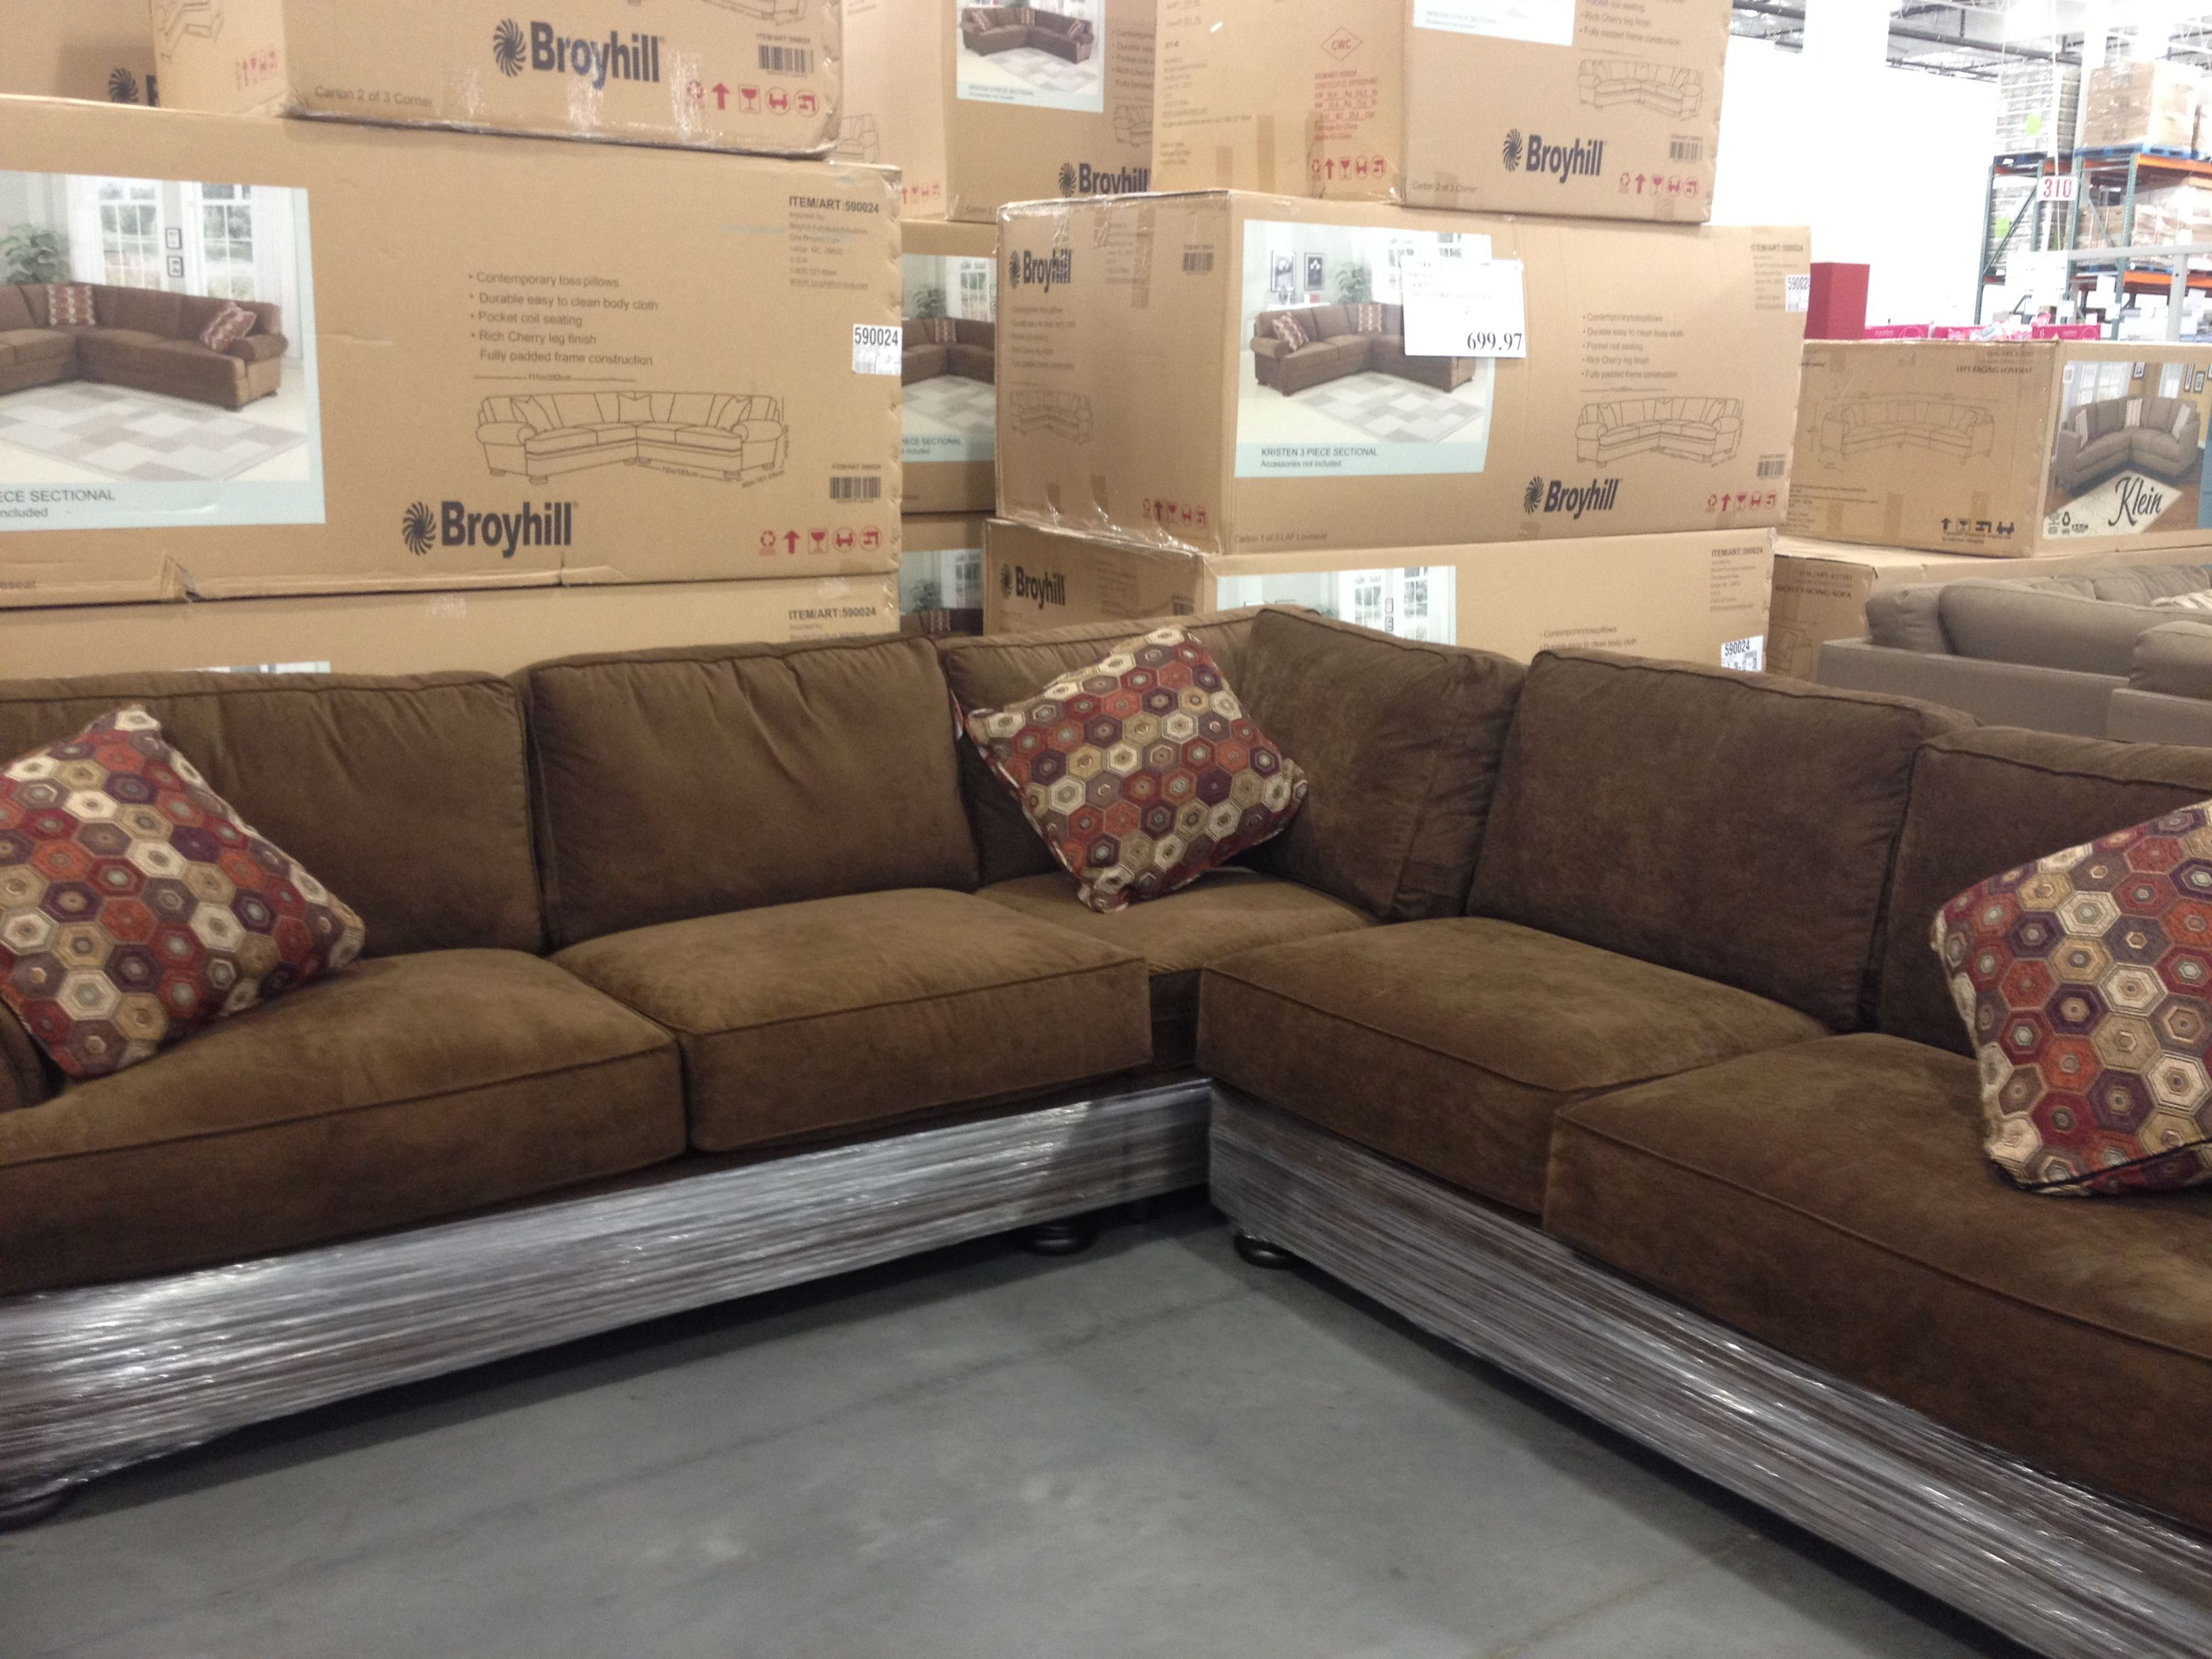 Miraculous Possible Sectional Couch To Replace The Crappy Piece Of Junk Uwap Interior Chair Design Uwaporg